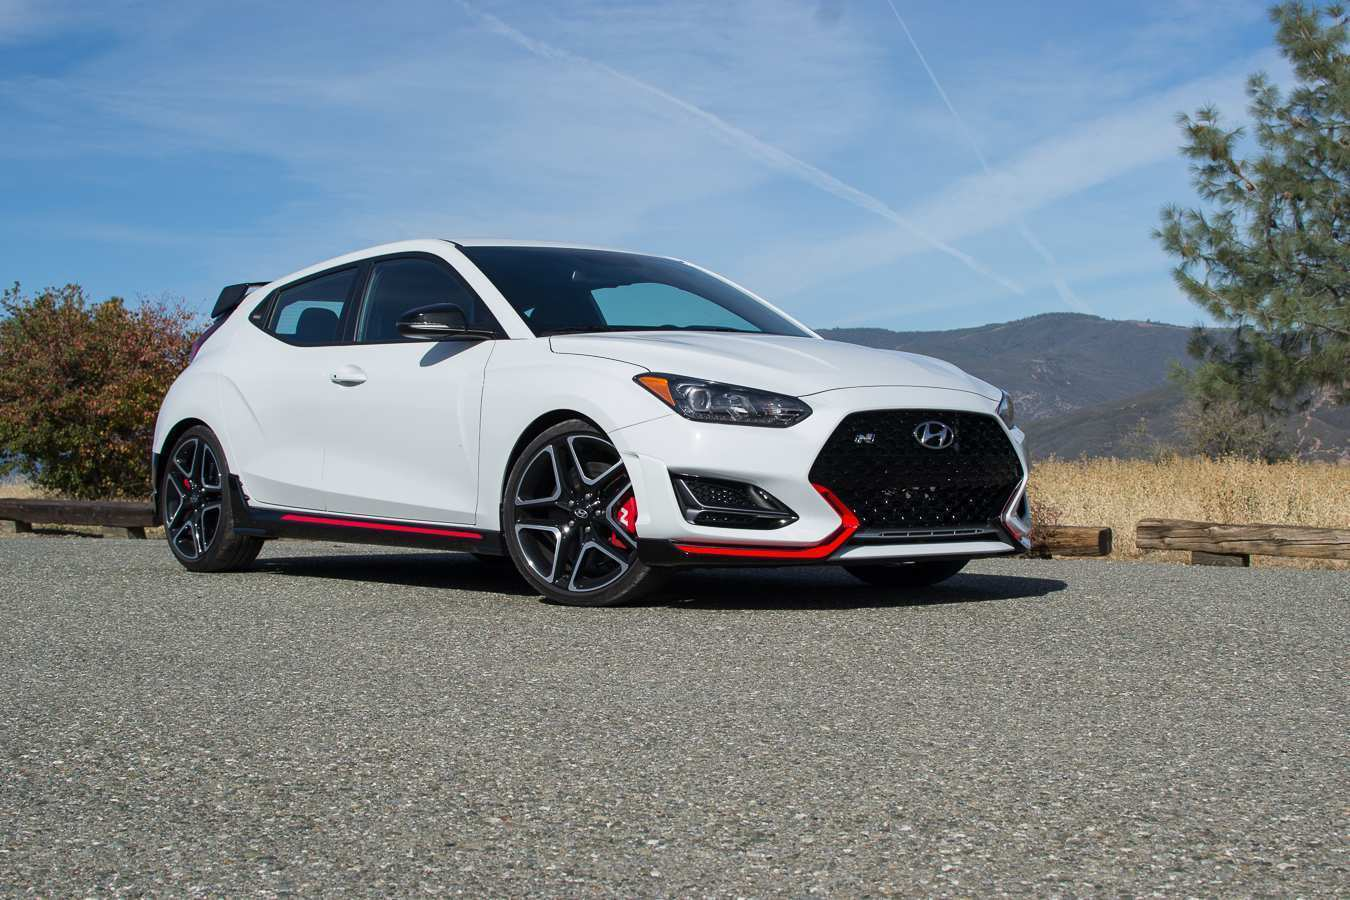 13 Great 2019 Hyundai Veloster N Redesign by 2019 Hyundai Veloster N